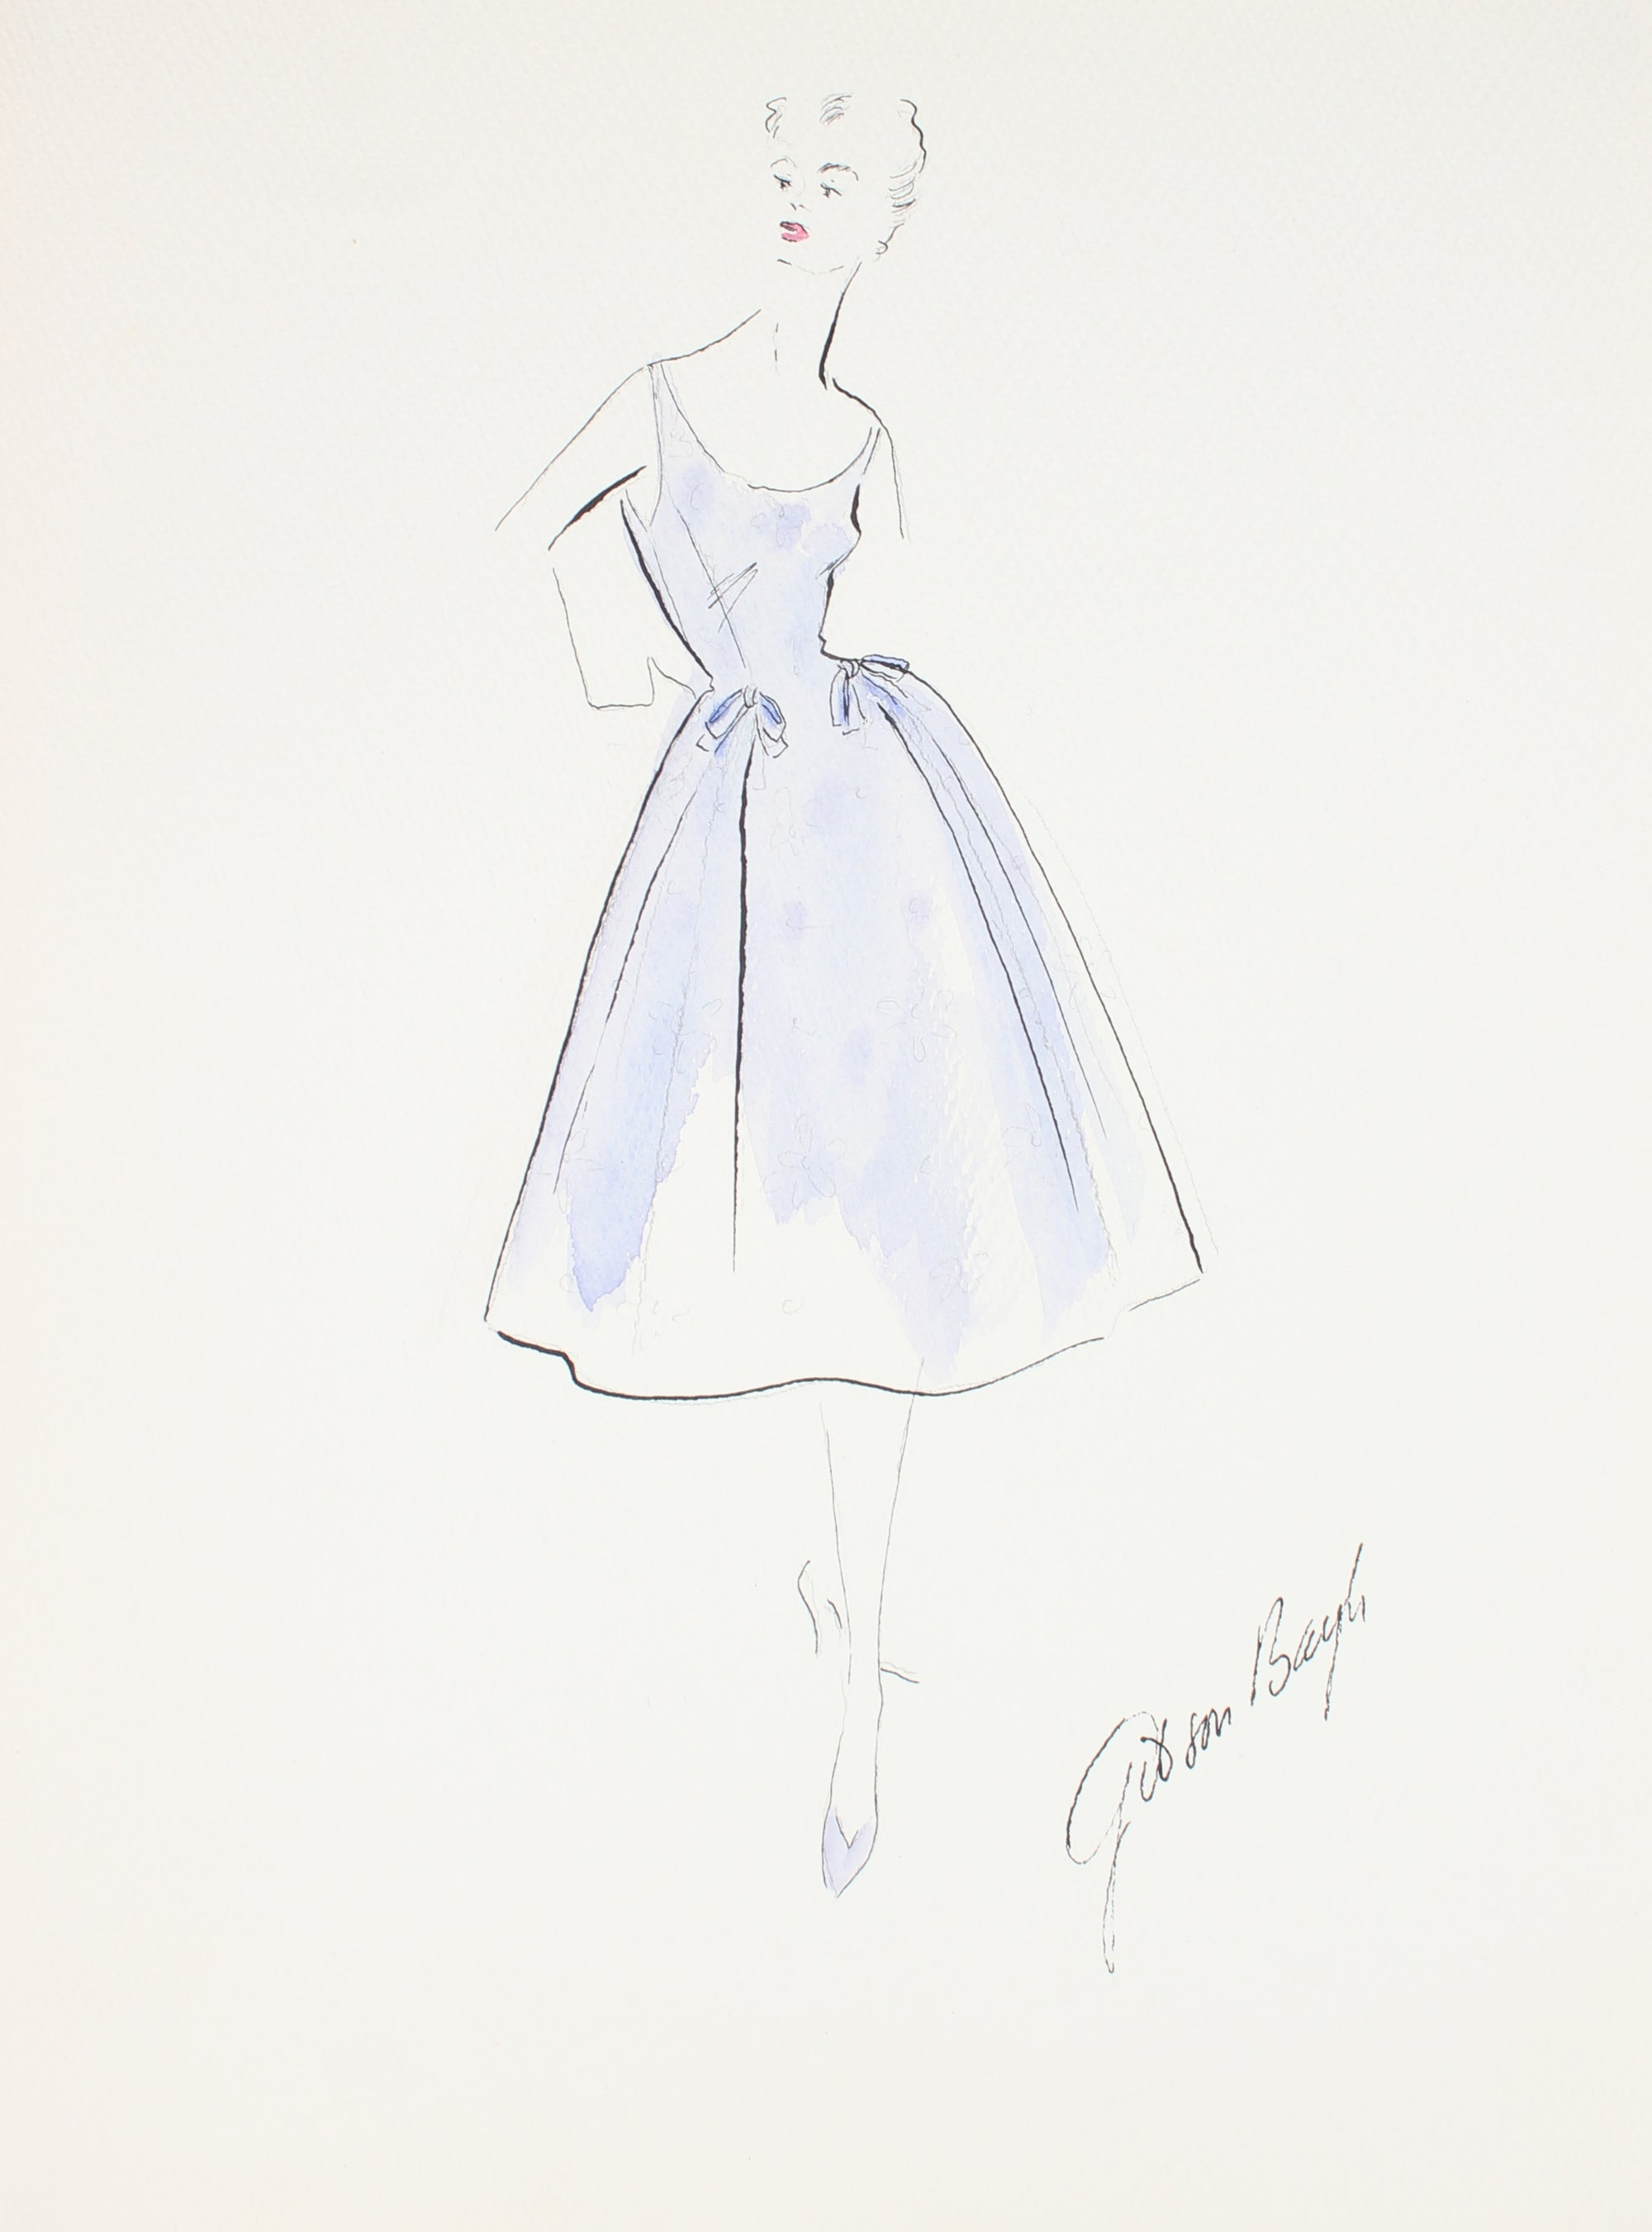 Paneled Bell-Shaped Dress in Lilac<br> Gouache & Ink Fashion Illustration<br><br>#26520